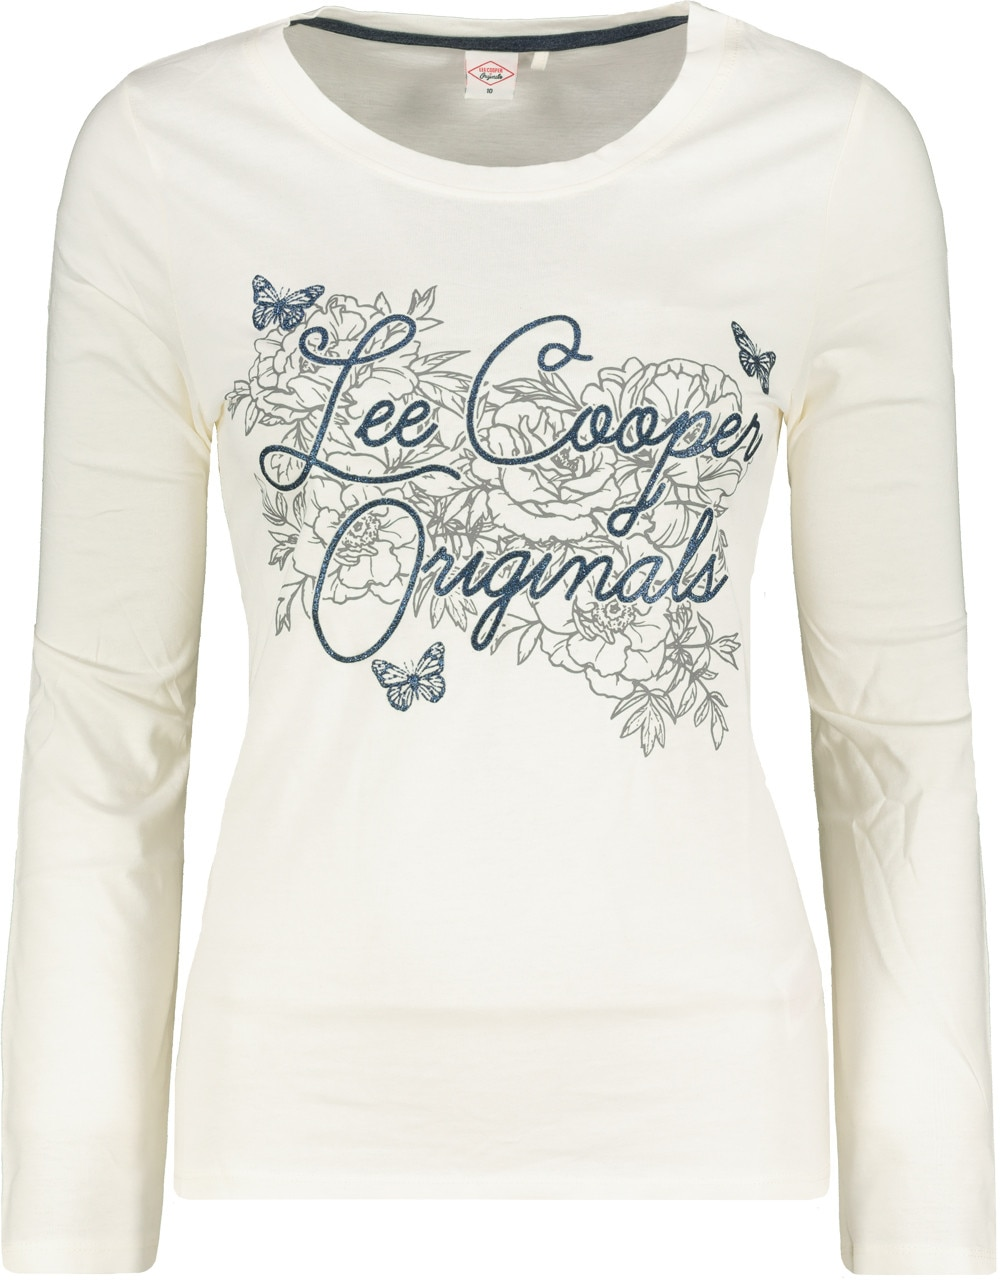 Women's T-shirt Lee Cooper Logo